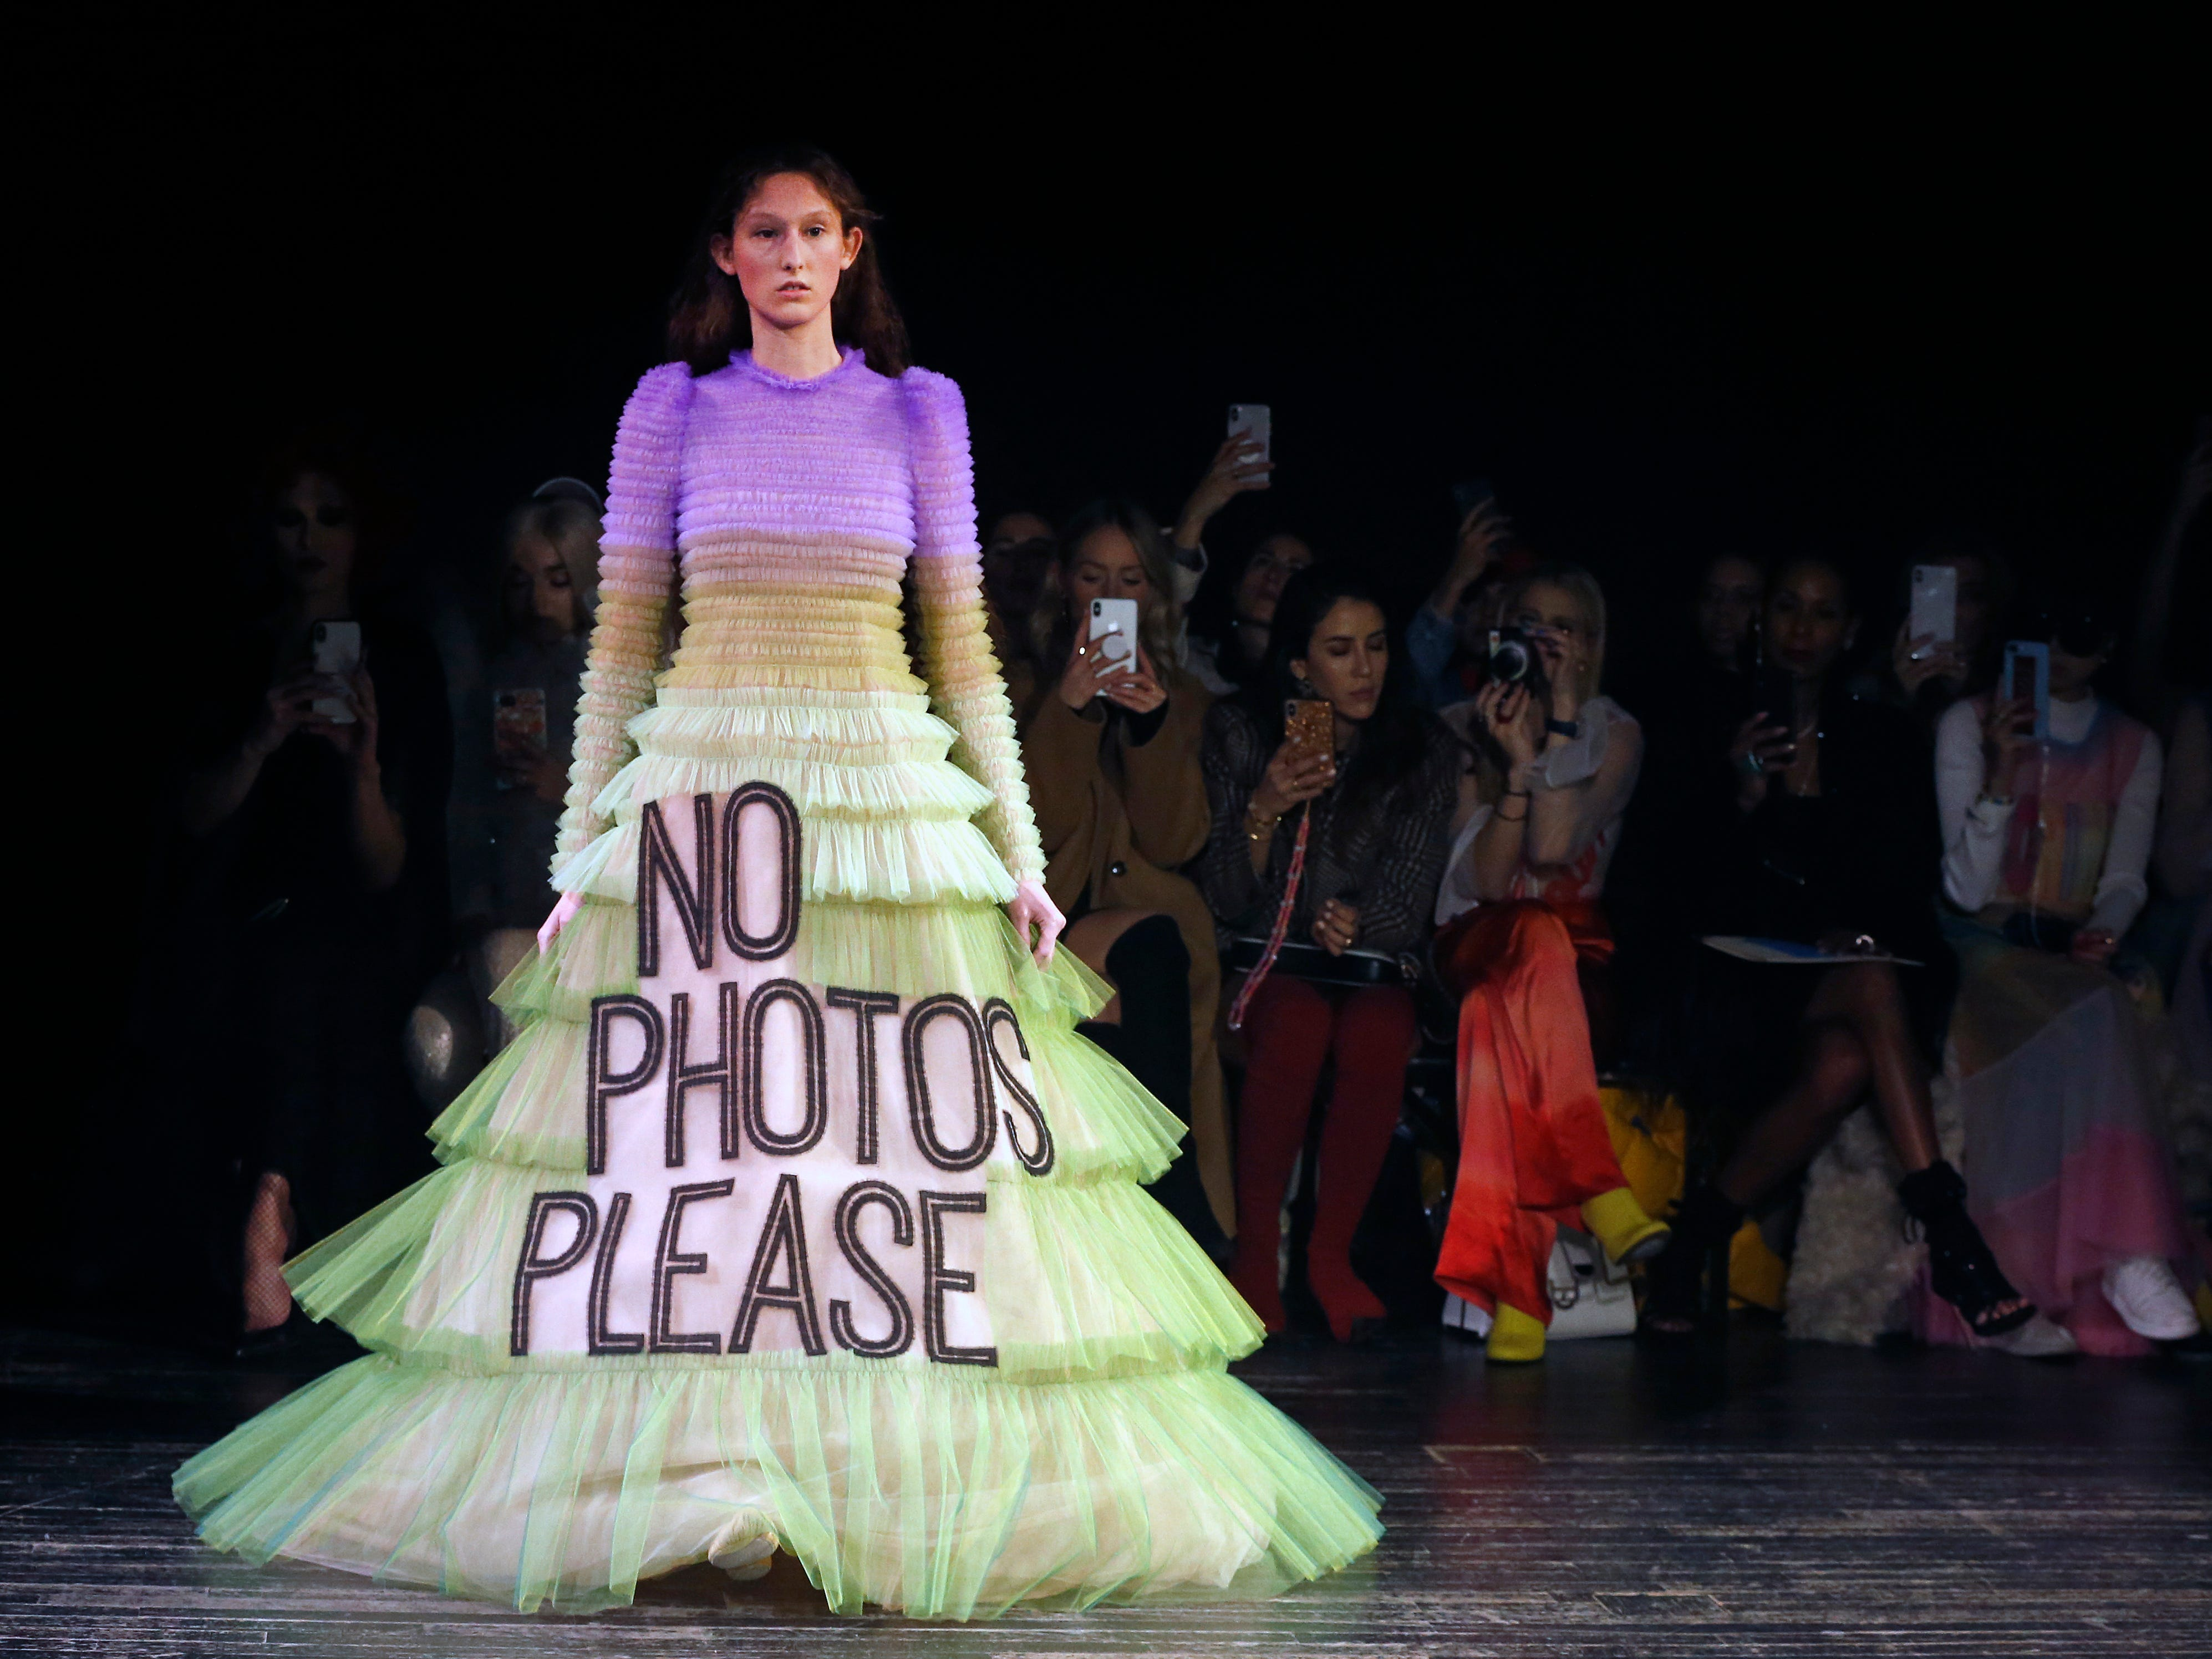 A model walks the runway during the Viktor & Rolf Spring Summer 2019 show as part of Paris Fashion Week on January 23, 2019 in Paris, France.